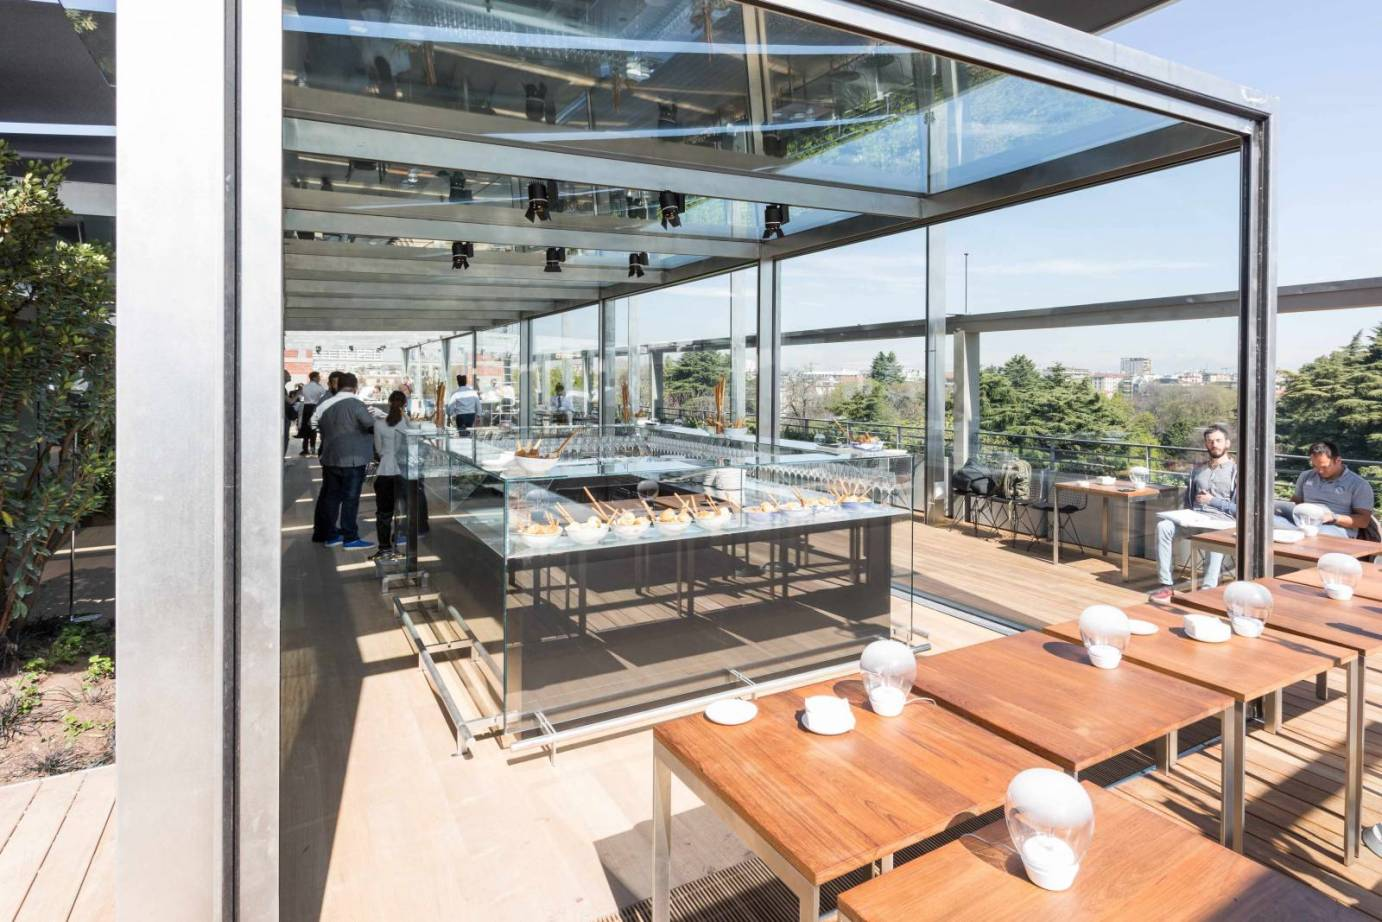 Terrazza Triennale Would You Go Back To The Restaurant In Which You Just Ate